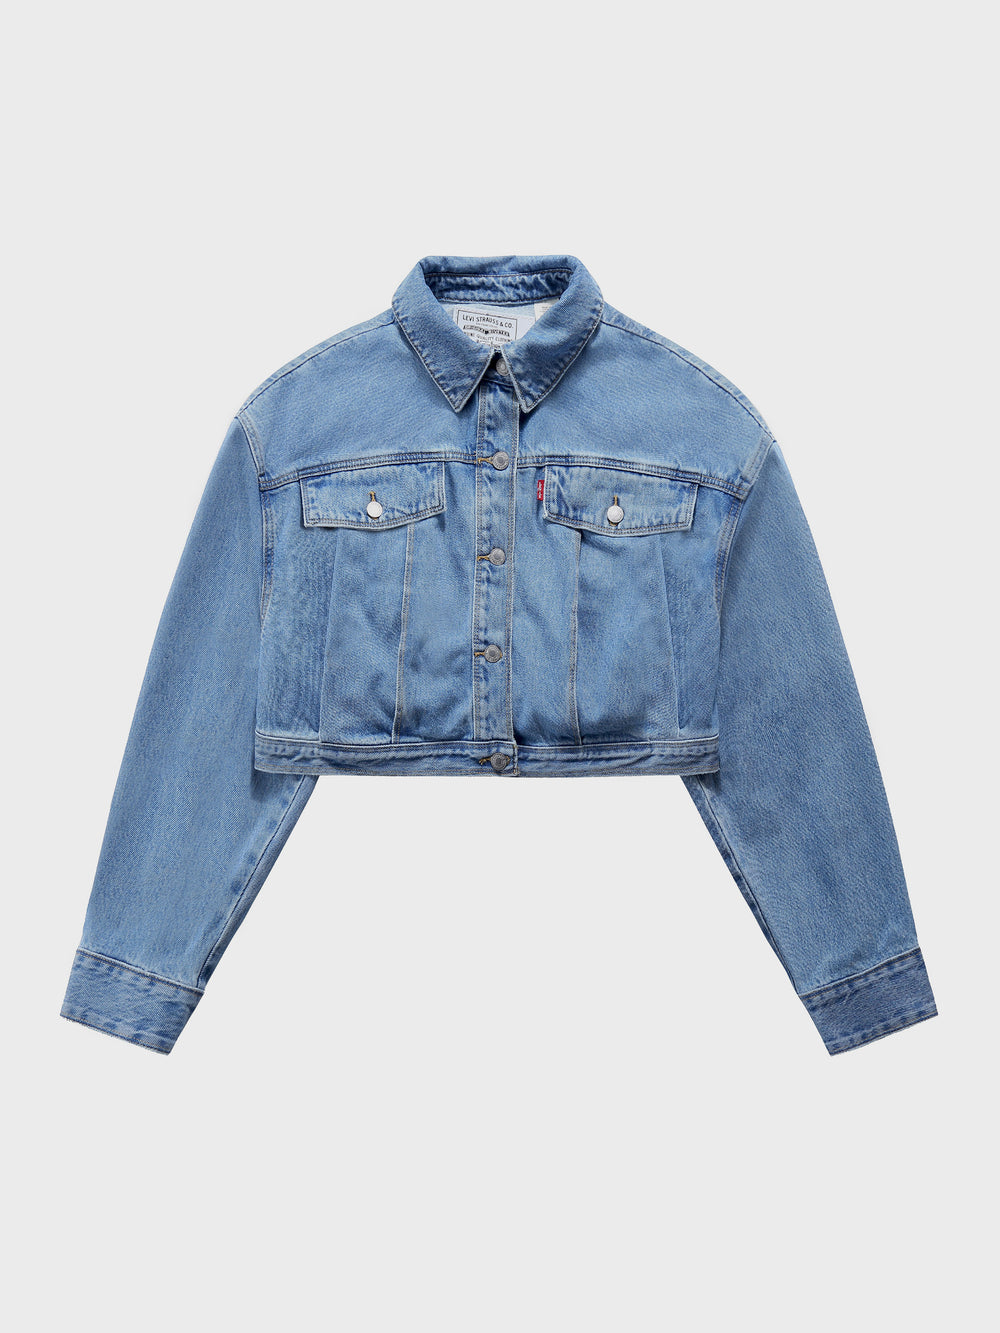 Feng Chen Wang × Levi's > Pleated Cropped Trucker Jacket